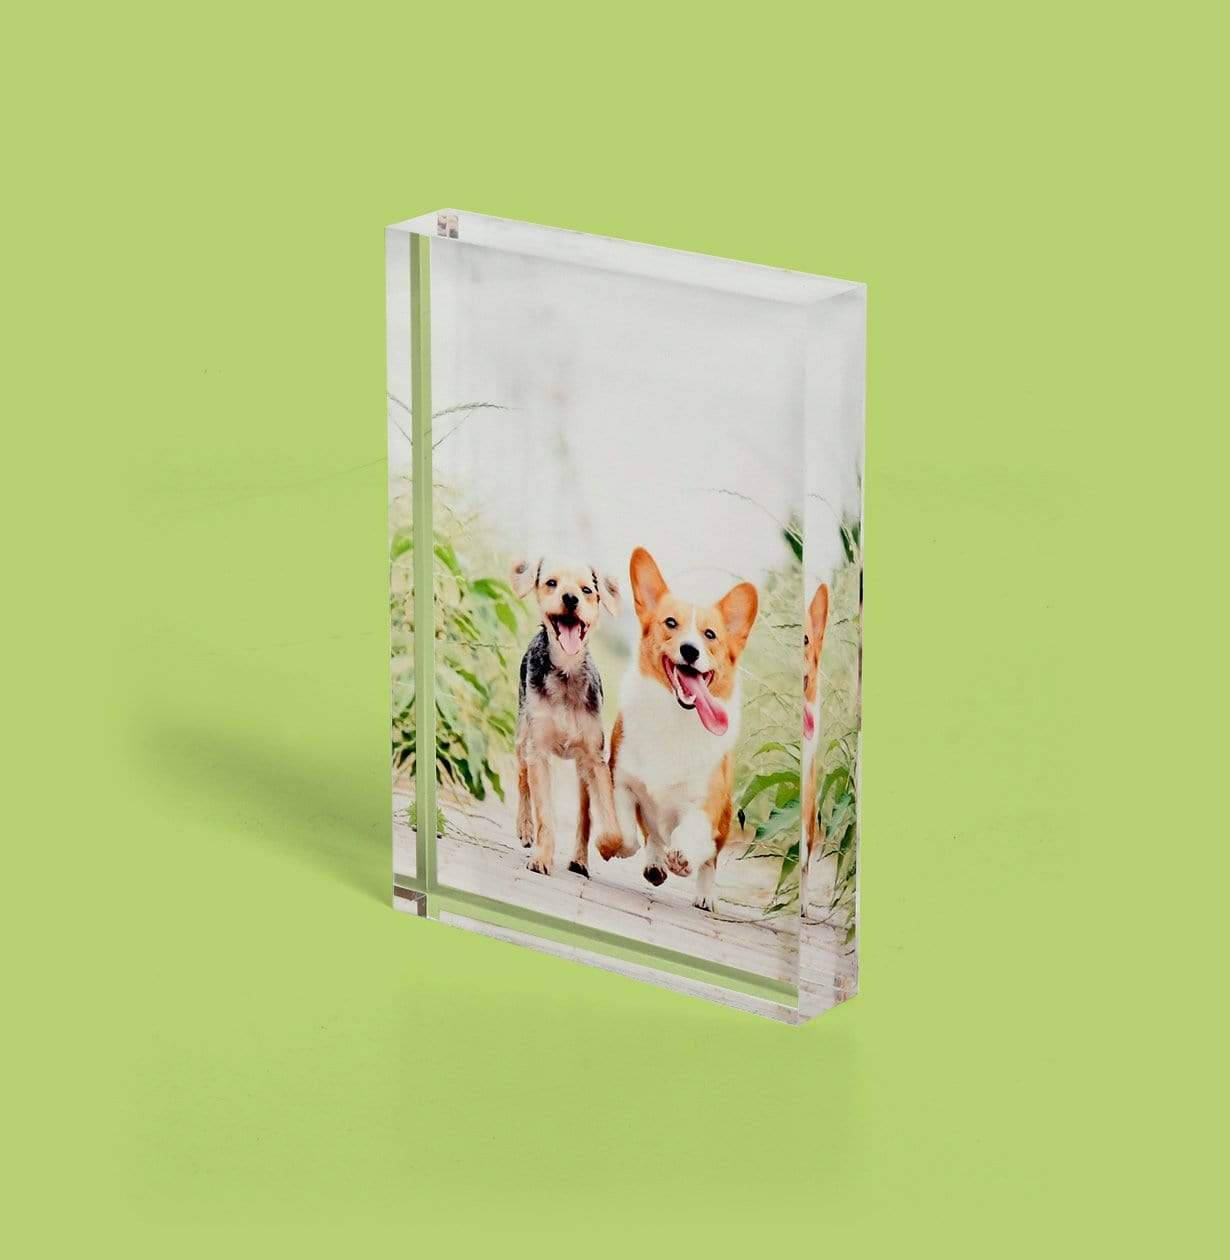 Pet Photo Printed on Acrylic Block - Desk Decor by Posterjack Canada